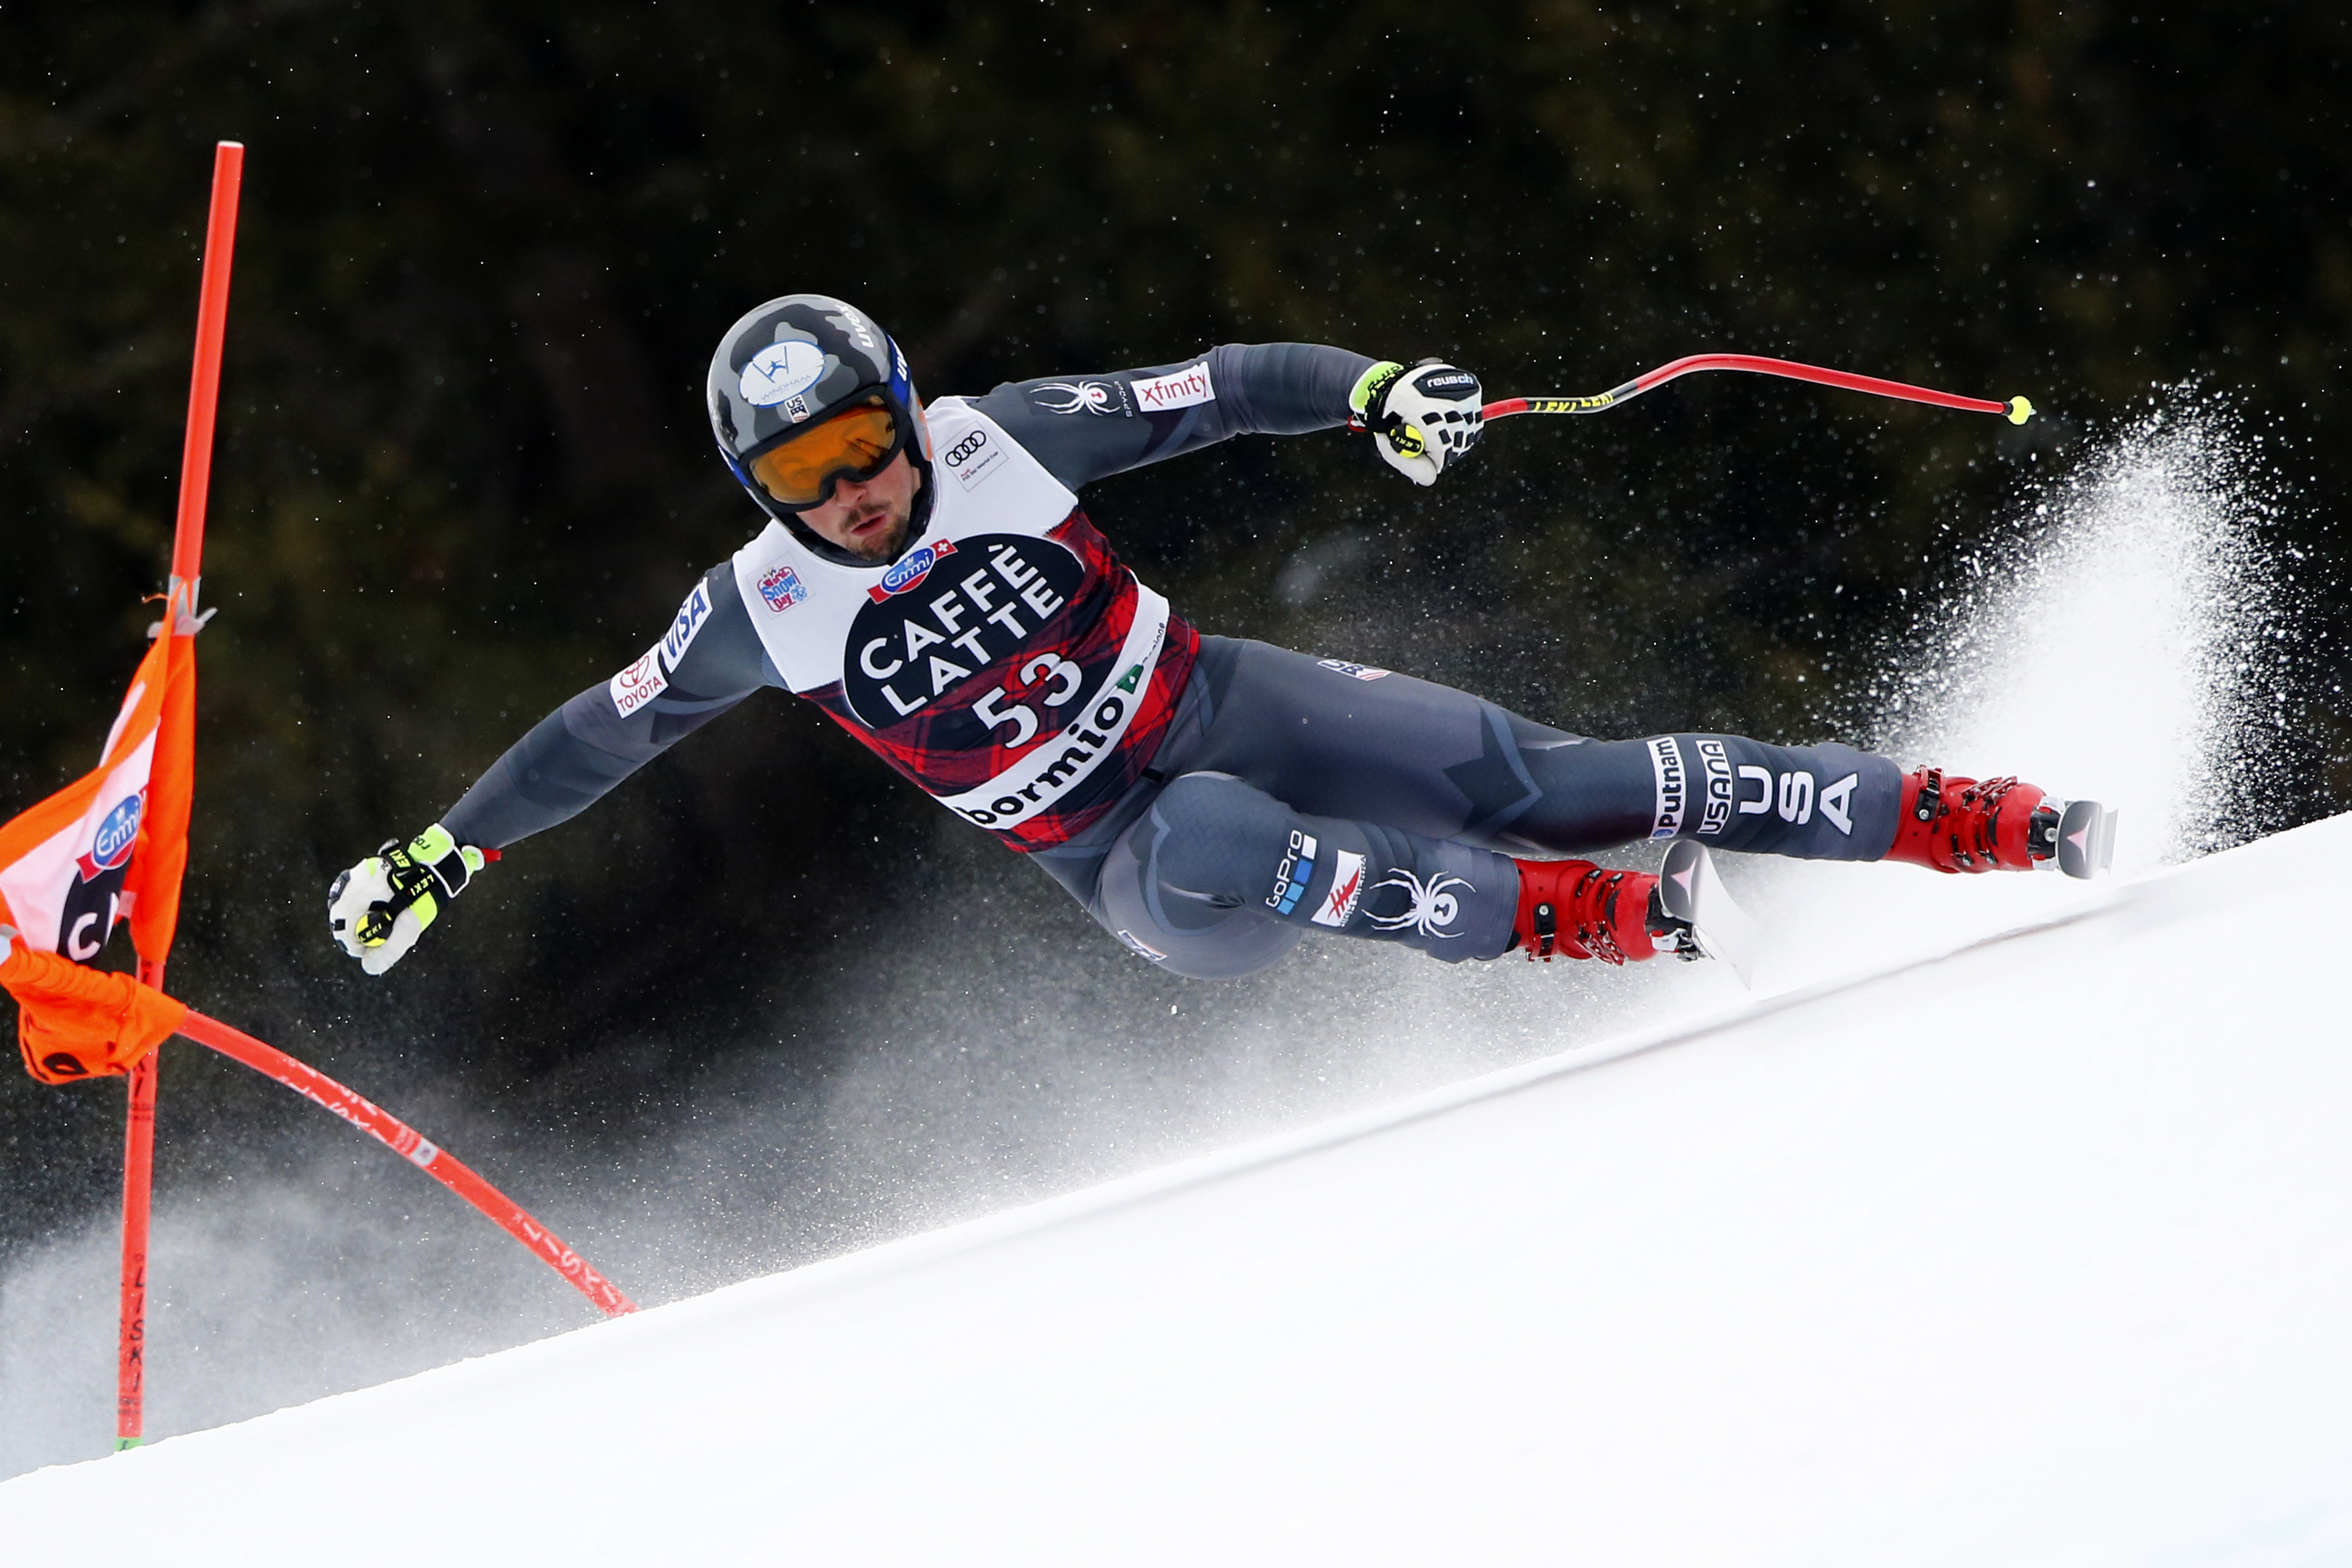 Tommy Biesemeyer finished seventh in Tuesday's FIS Ski World Cup downhill training run in Bormio, Italy.